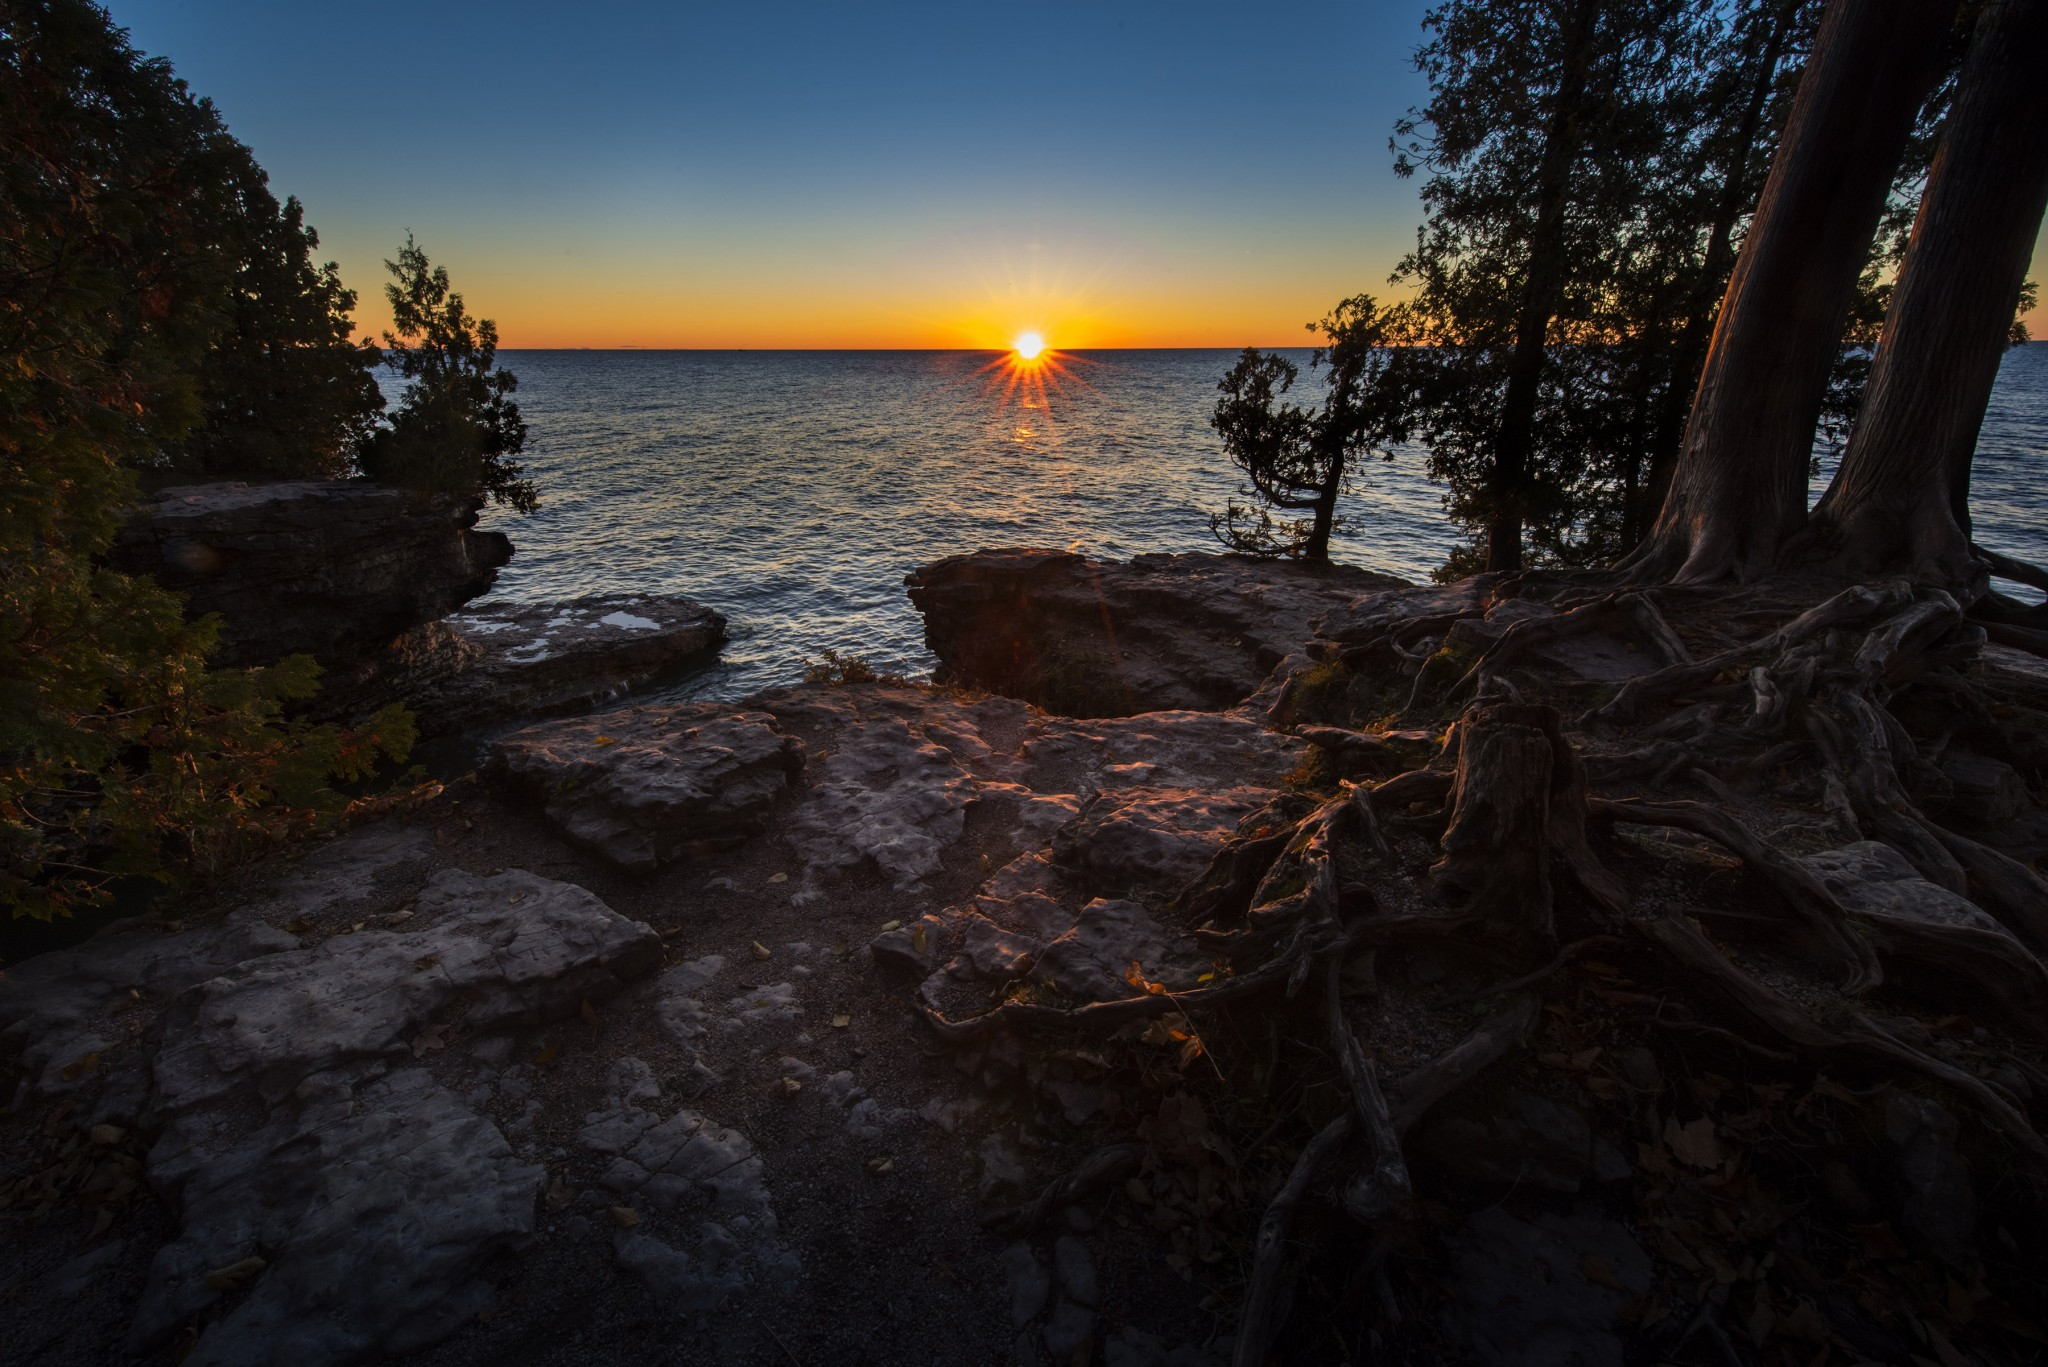 Cave Point County Park on Door County's eastern shore at sunrise. A popular area for kayaking, Cave Point protects a scenic rocky shore overlooking Lake Michigan. (Photo by Art Weber)